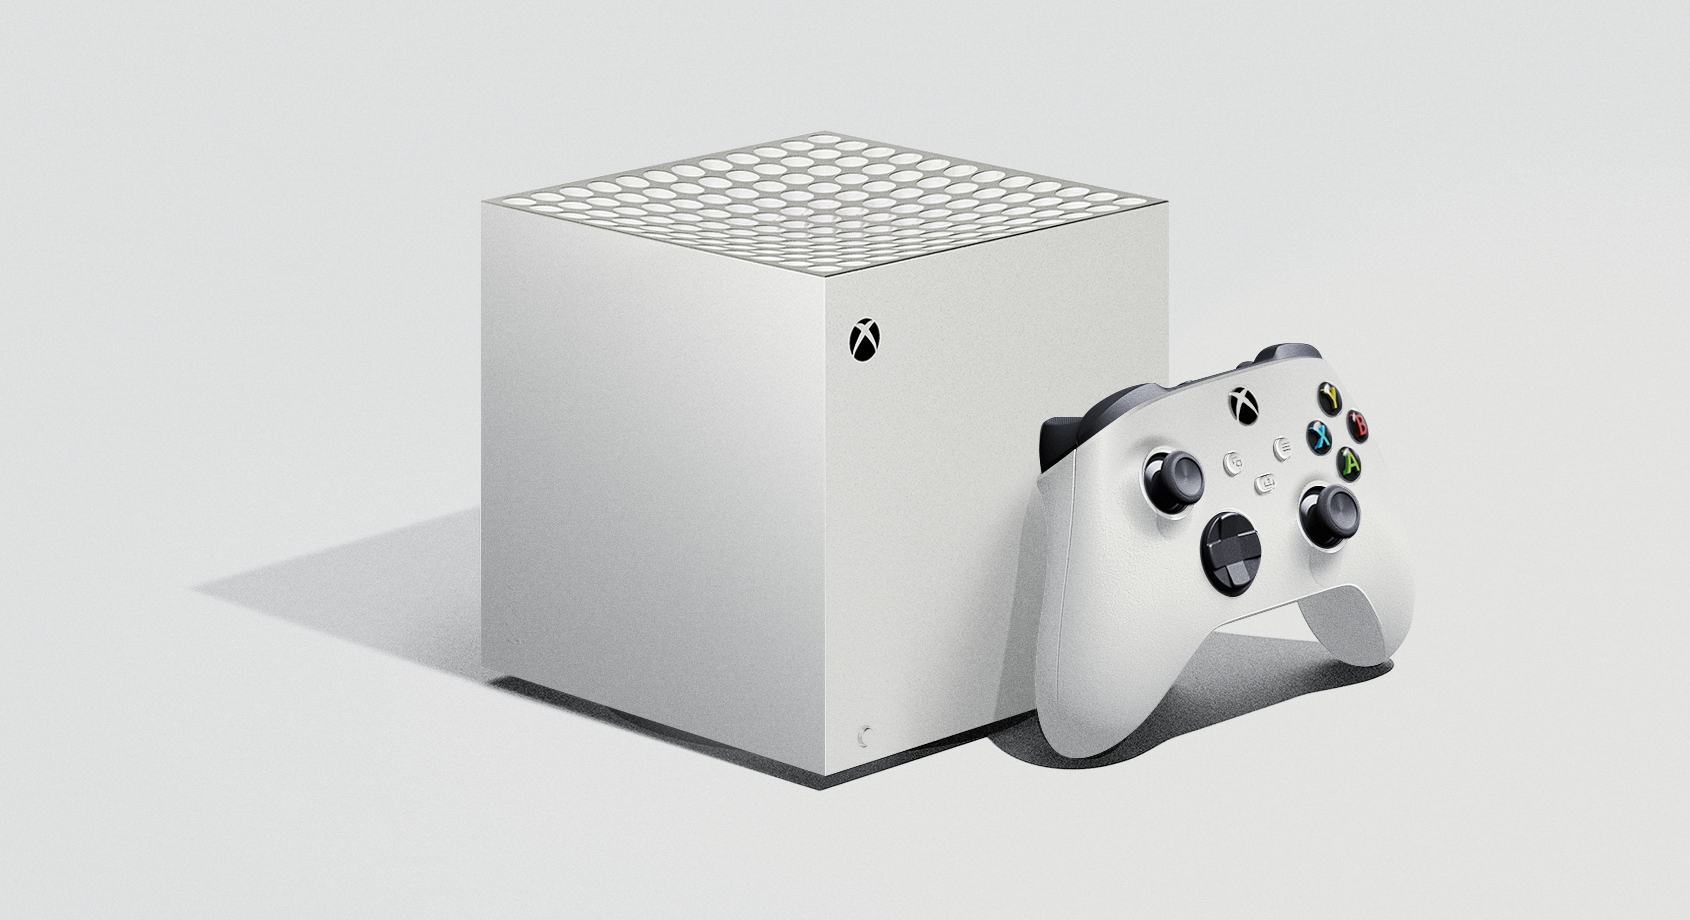 Xbox Series S Lockhart To Share The Same Cpu Spec As The Xbox Series X To Target 1080p 60 Fps Or 1440p 30 Fps Console Likely To Be Officially Unveiled In August